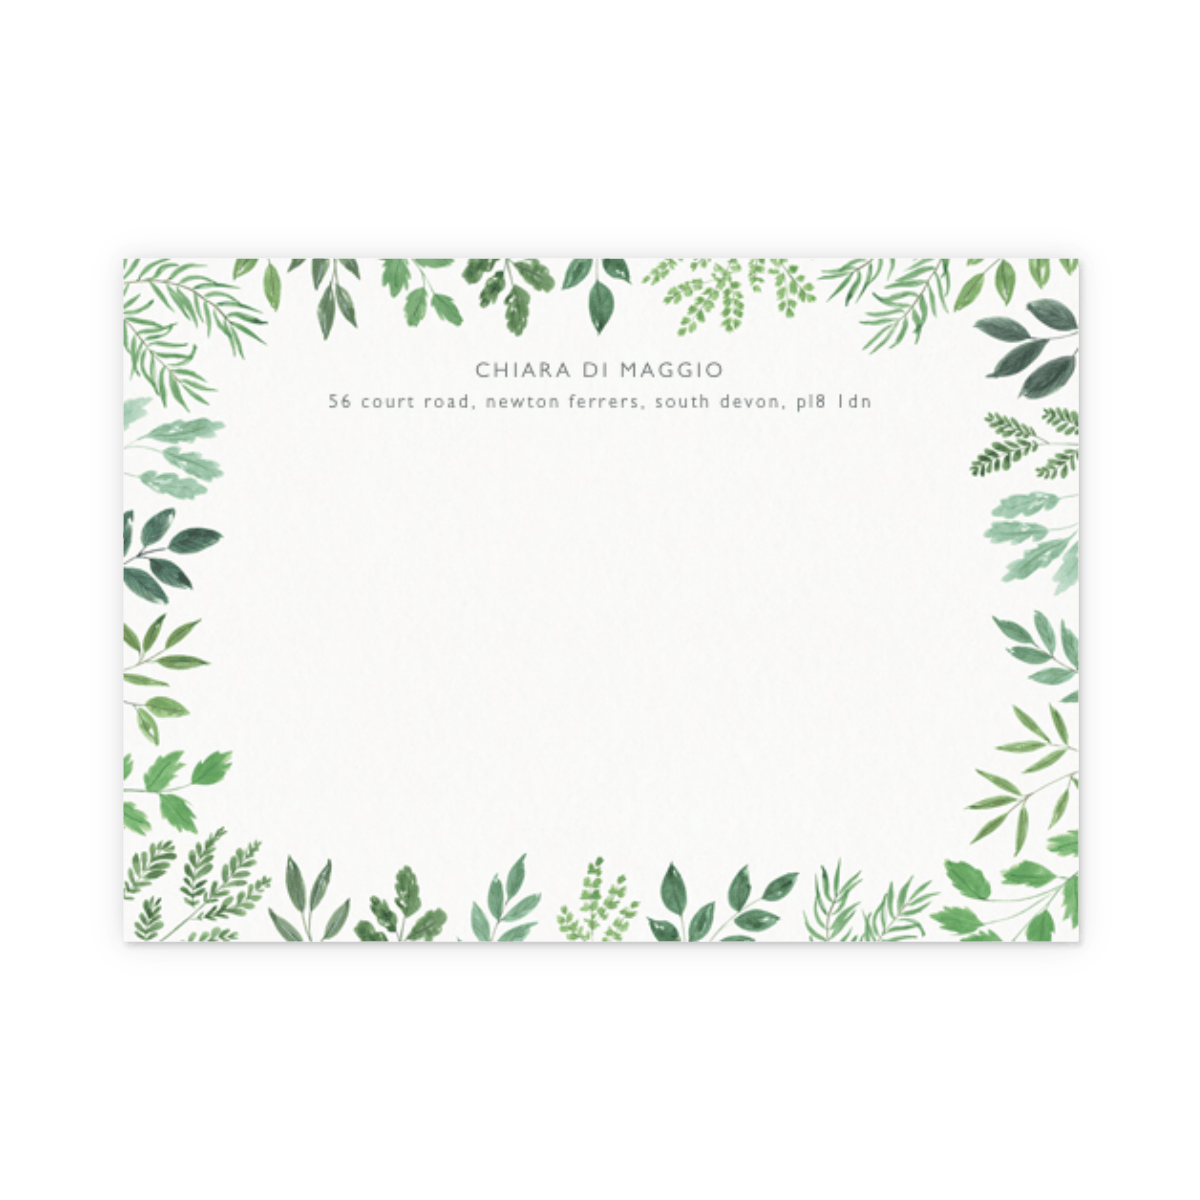 Https%3a%2f%2fwww.papier.com%2fproduct image%2f95848%2f10%2fgreen leaves 24027 front 1573747446.png?ixlib=rb 1.1